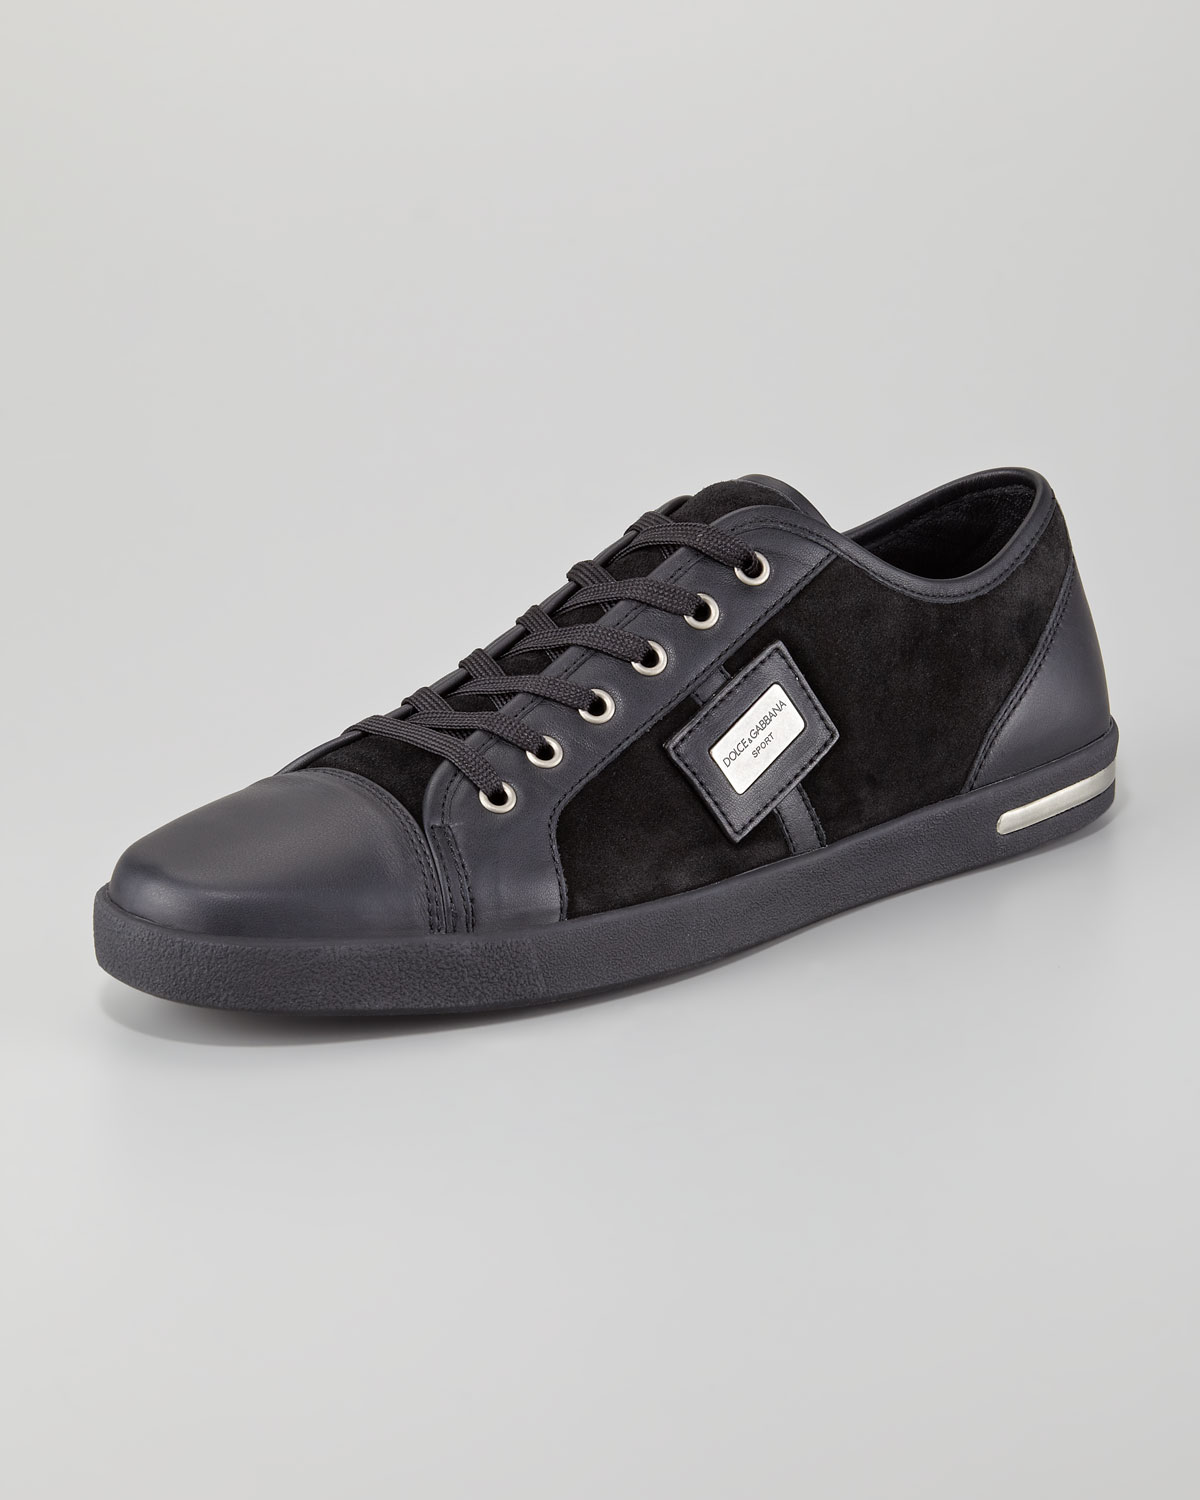 eba72e765805a Dolce & Gabbana Metal Logo Sneaker in Black for Men - Lyst